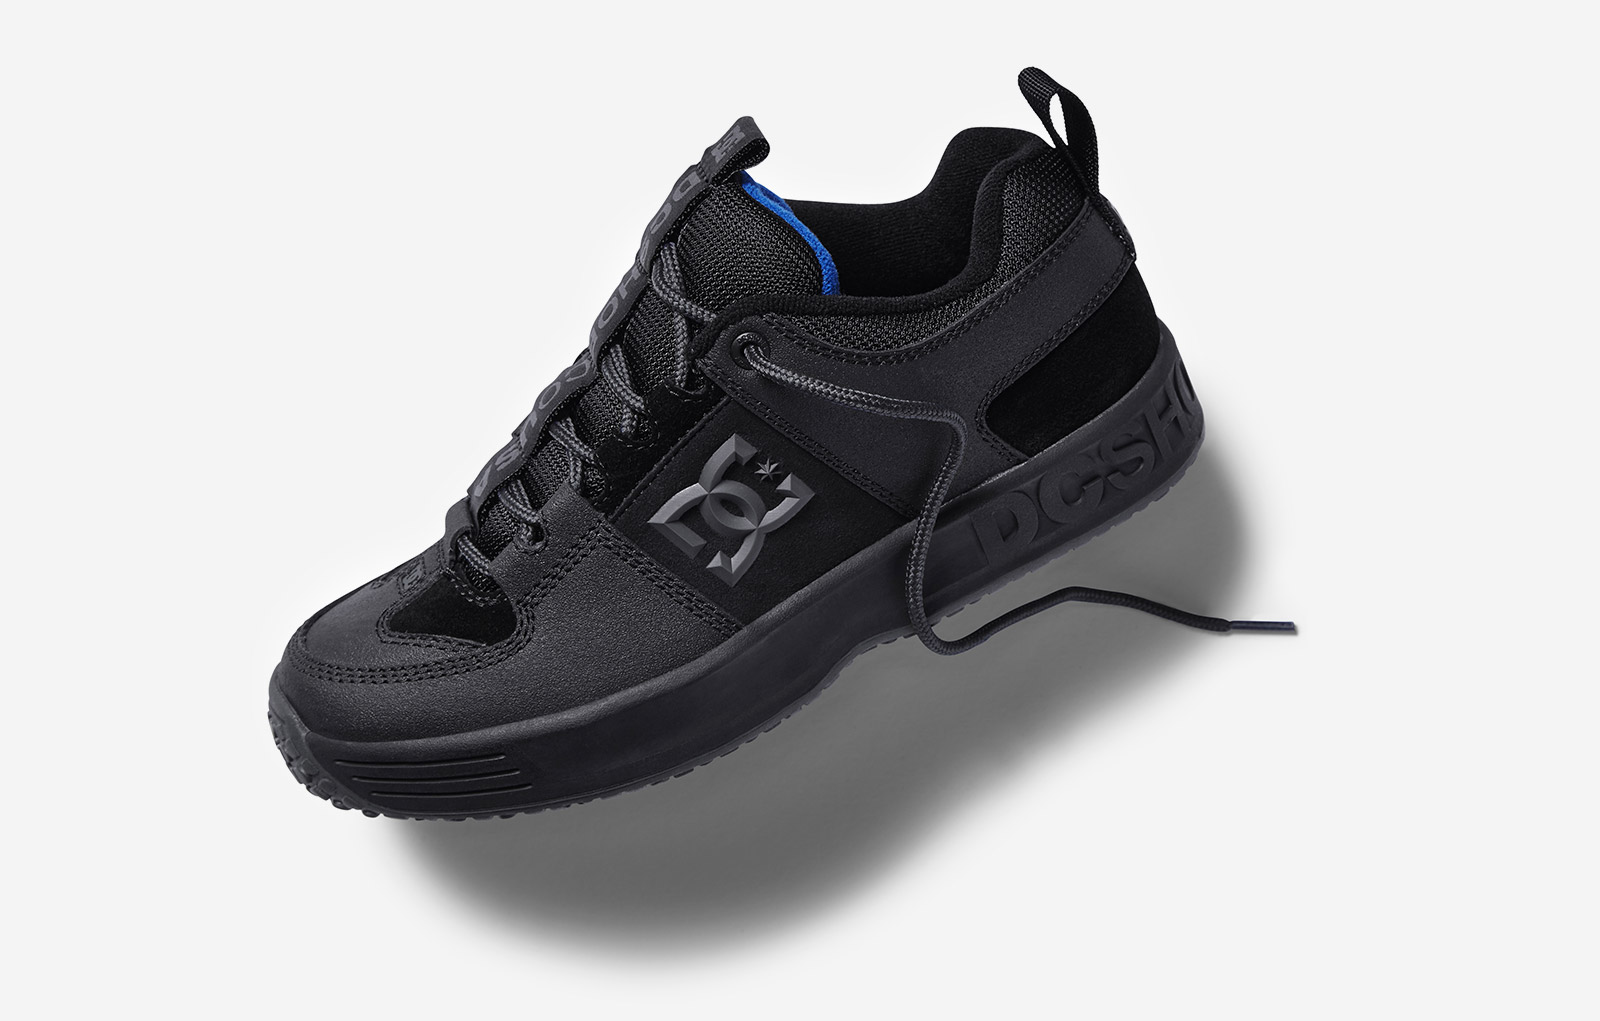 49b2ebcd2c1301 Heritage - Your Skateboarding Go To Shoe | DC Shoes